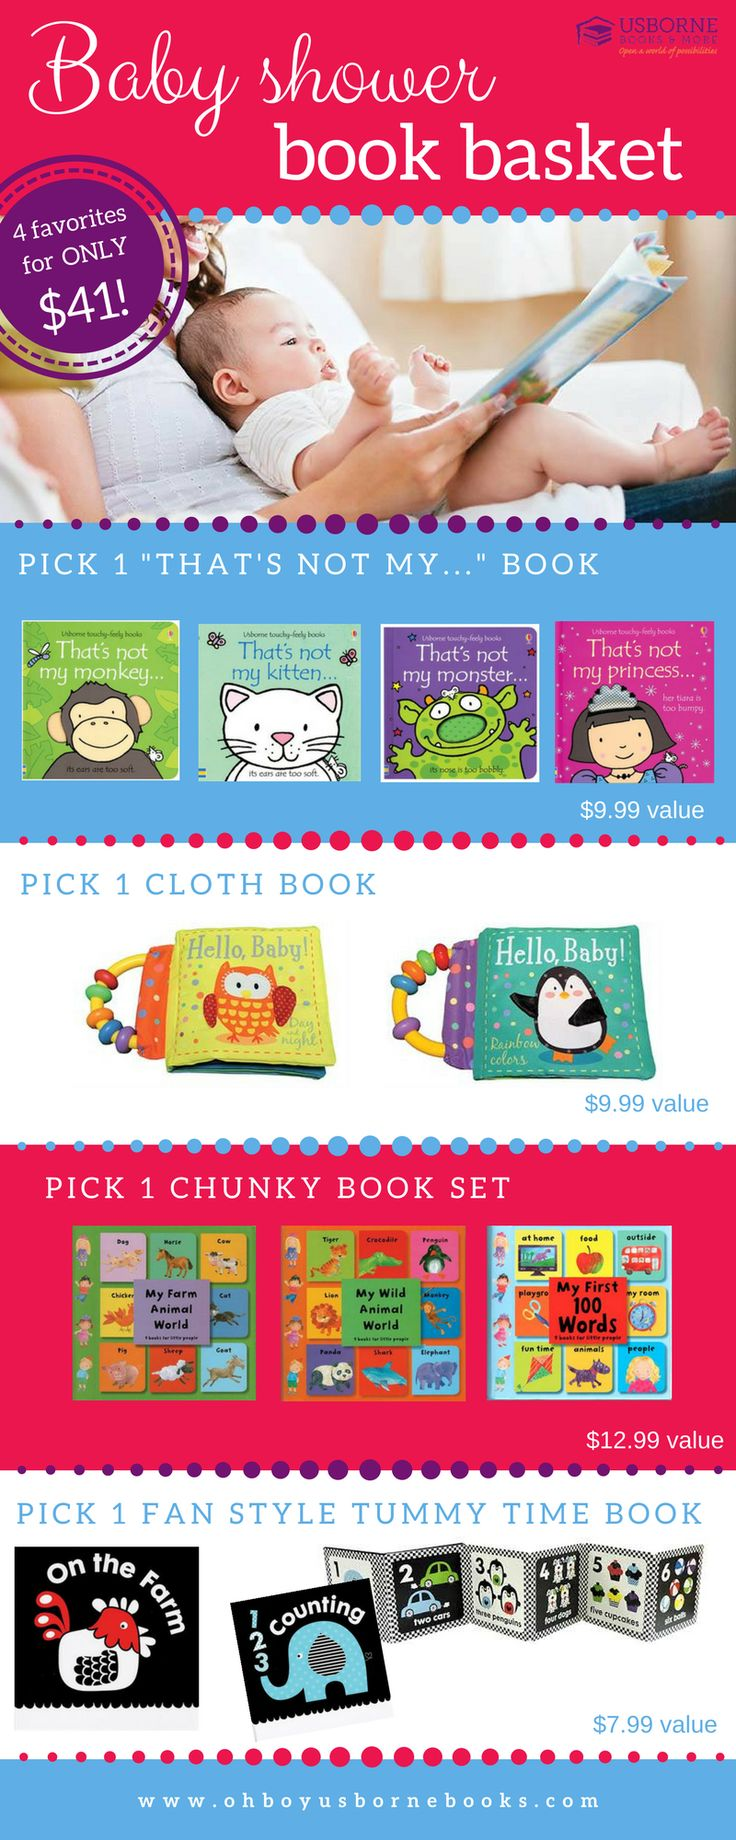 Are you looking for the perfect baby shower gift?  Put together a fun book basket!